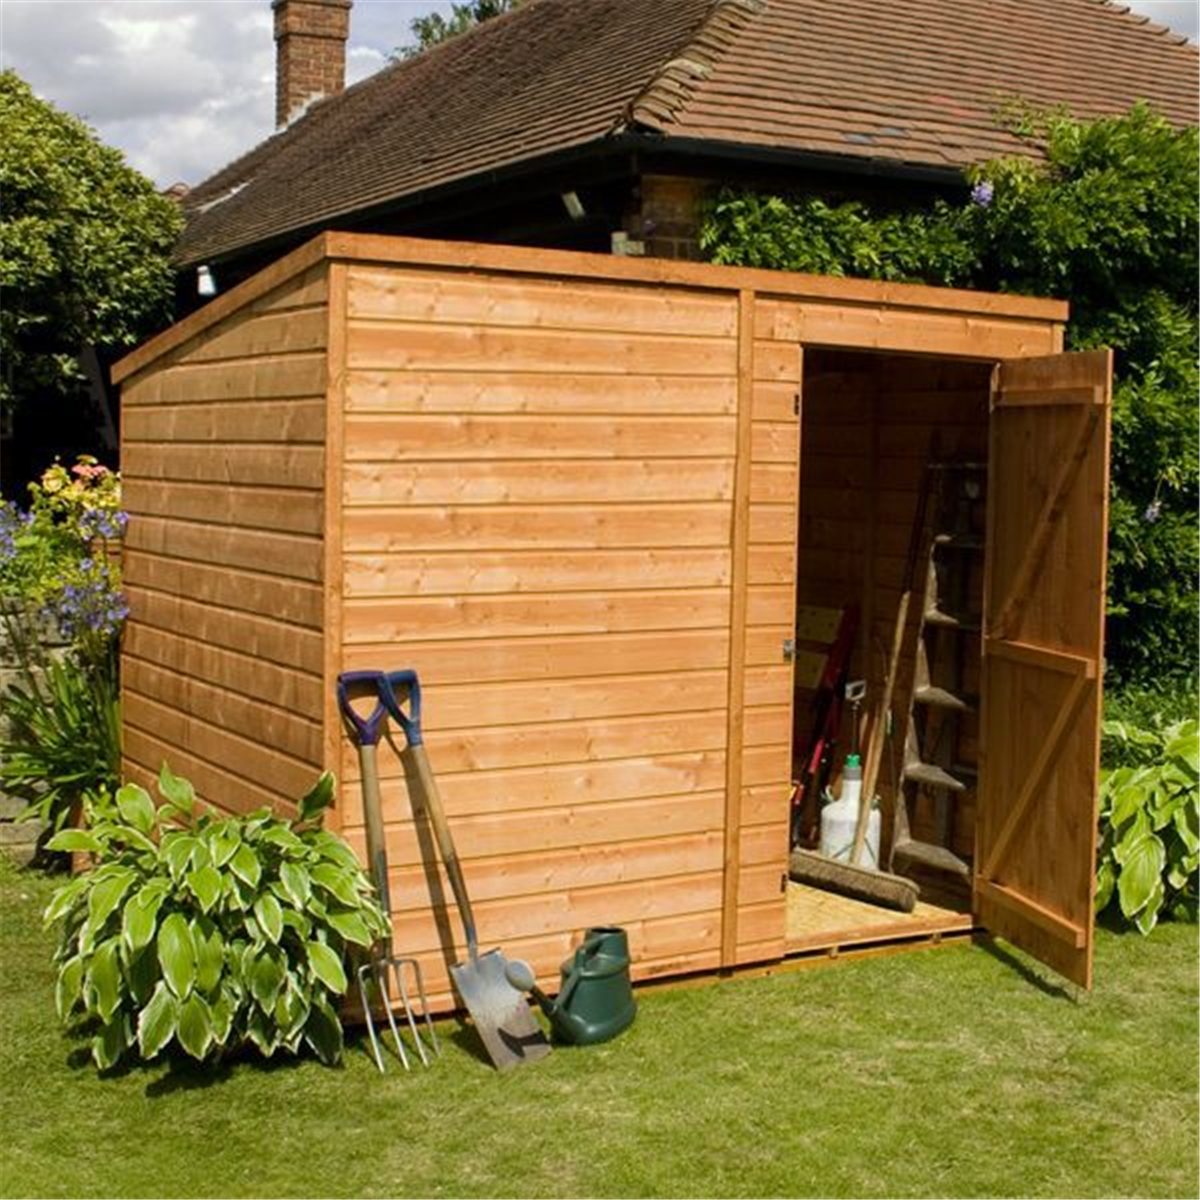 Windowless Tongue and Groove Pent Shed With Single Door (solid